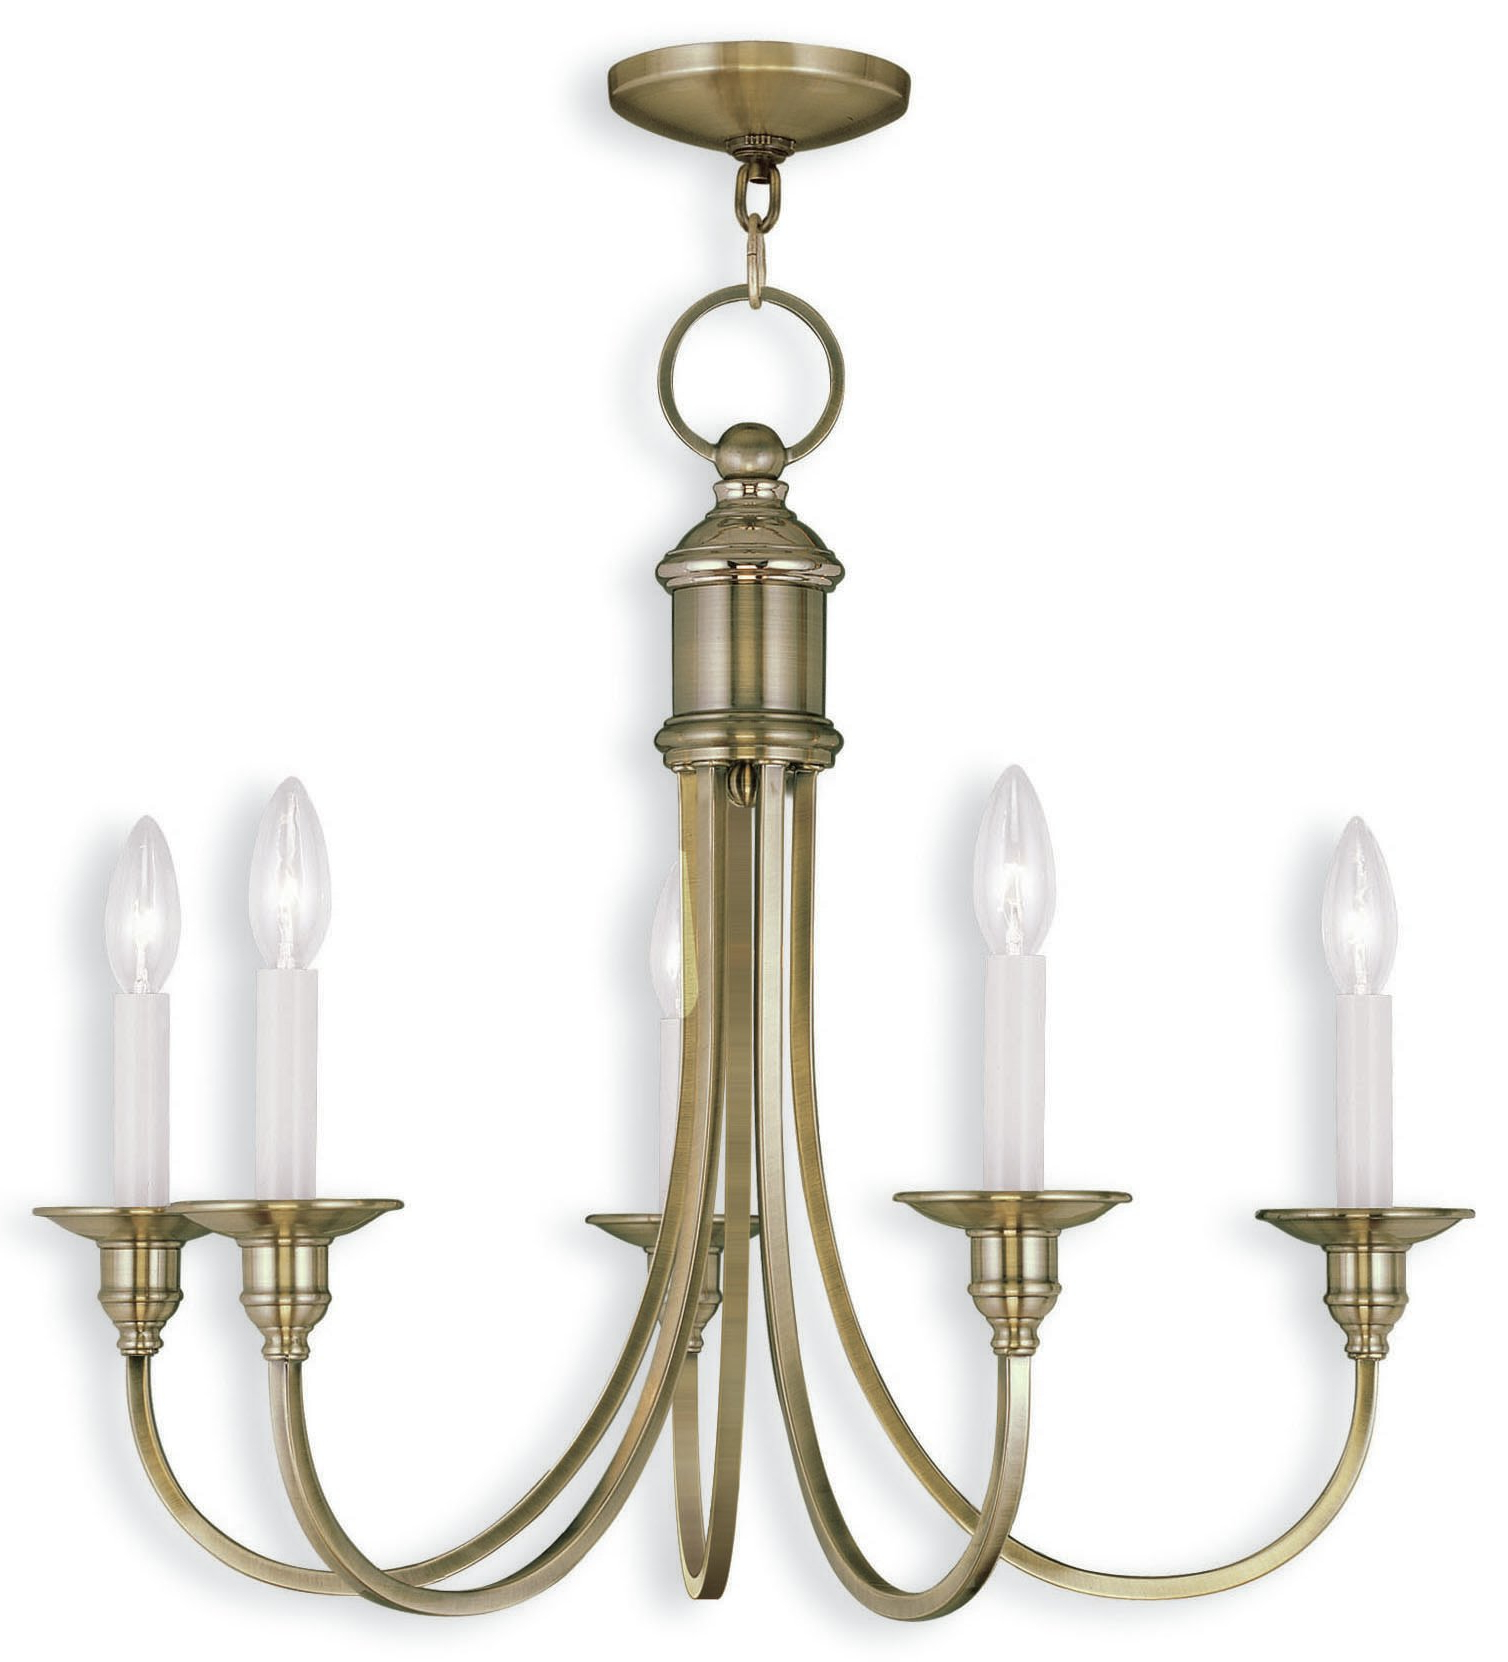 Florentina 5 Light Candle Style Chandeliers Regarding Most Recent Eckard 5 Light Candle Style Chandelier (View 8 of 20)